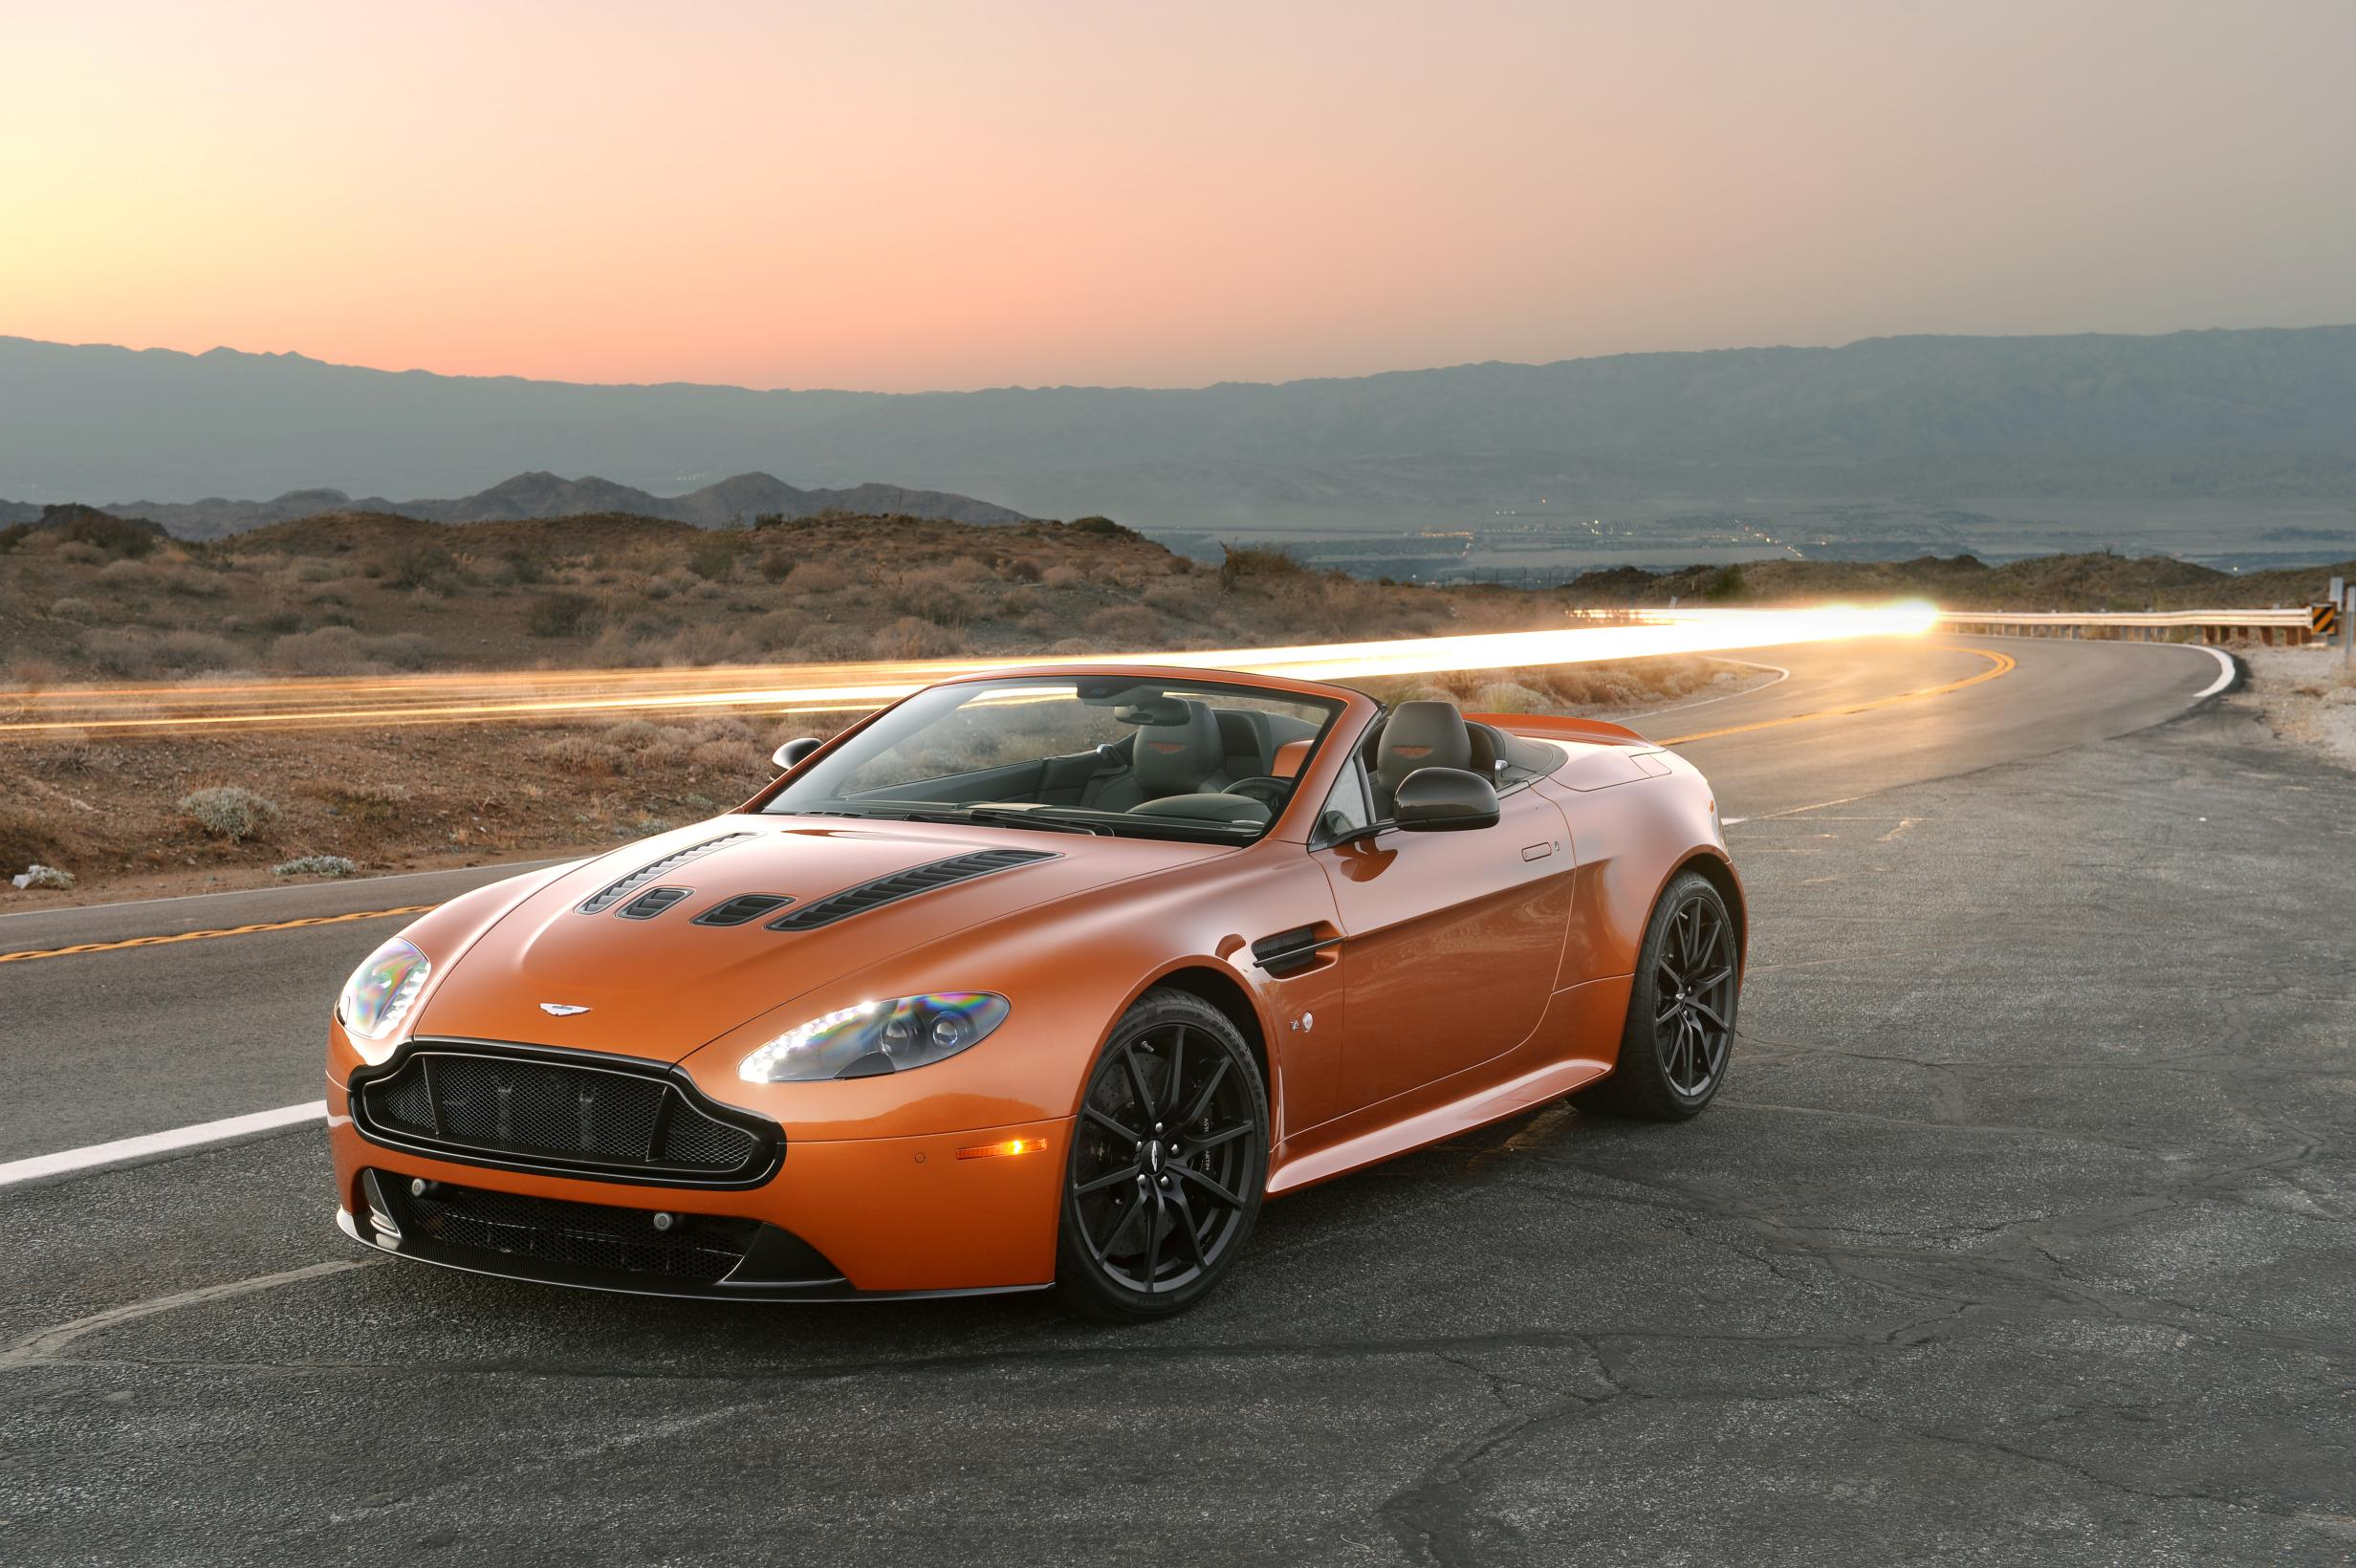 ASTON MARTIN ALLY FINANCIAL OFFER A NEW WAY TO LEASE MyAutoWorldcom - Lease aston martin